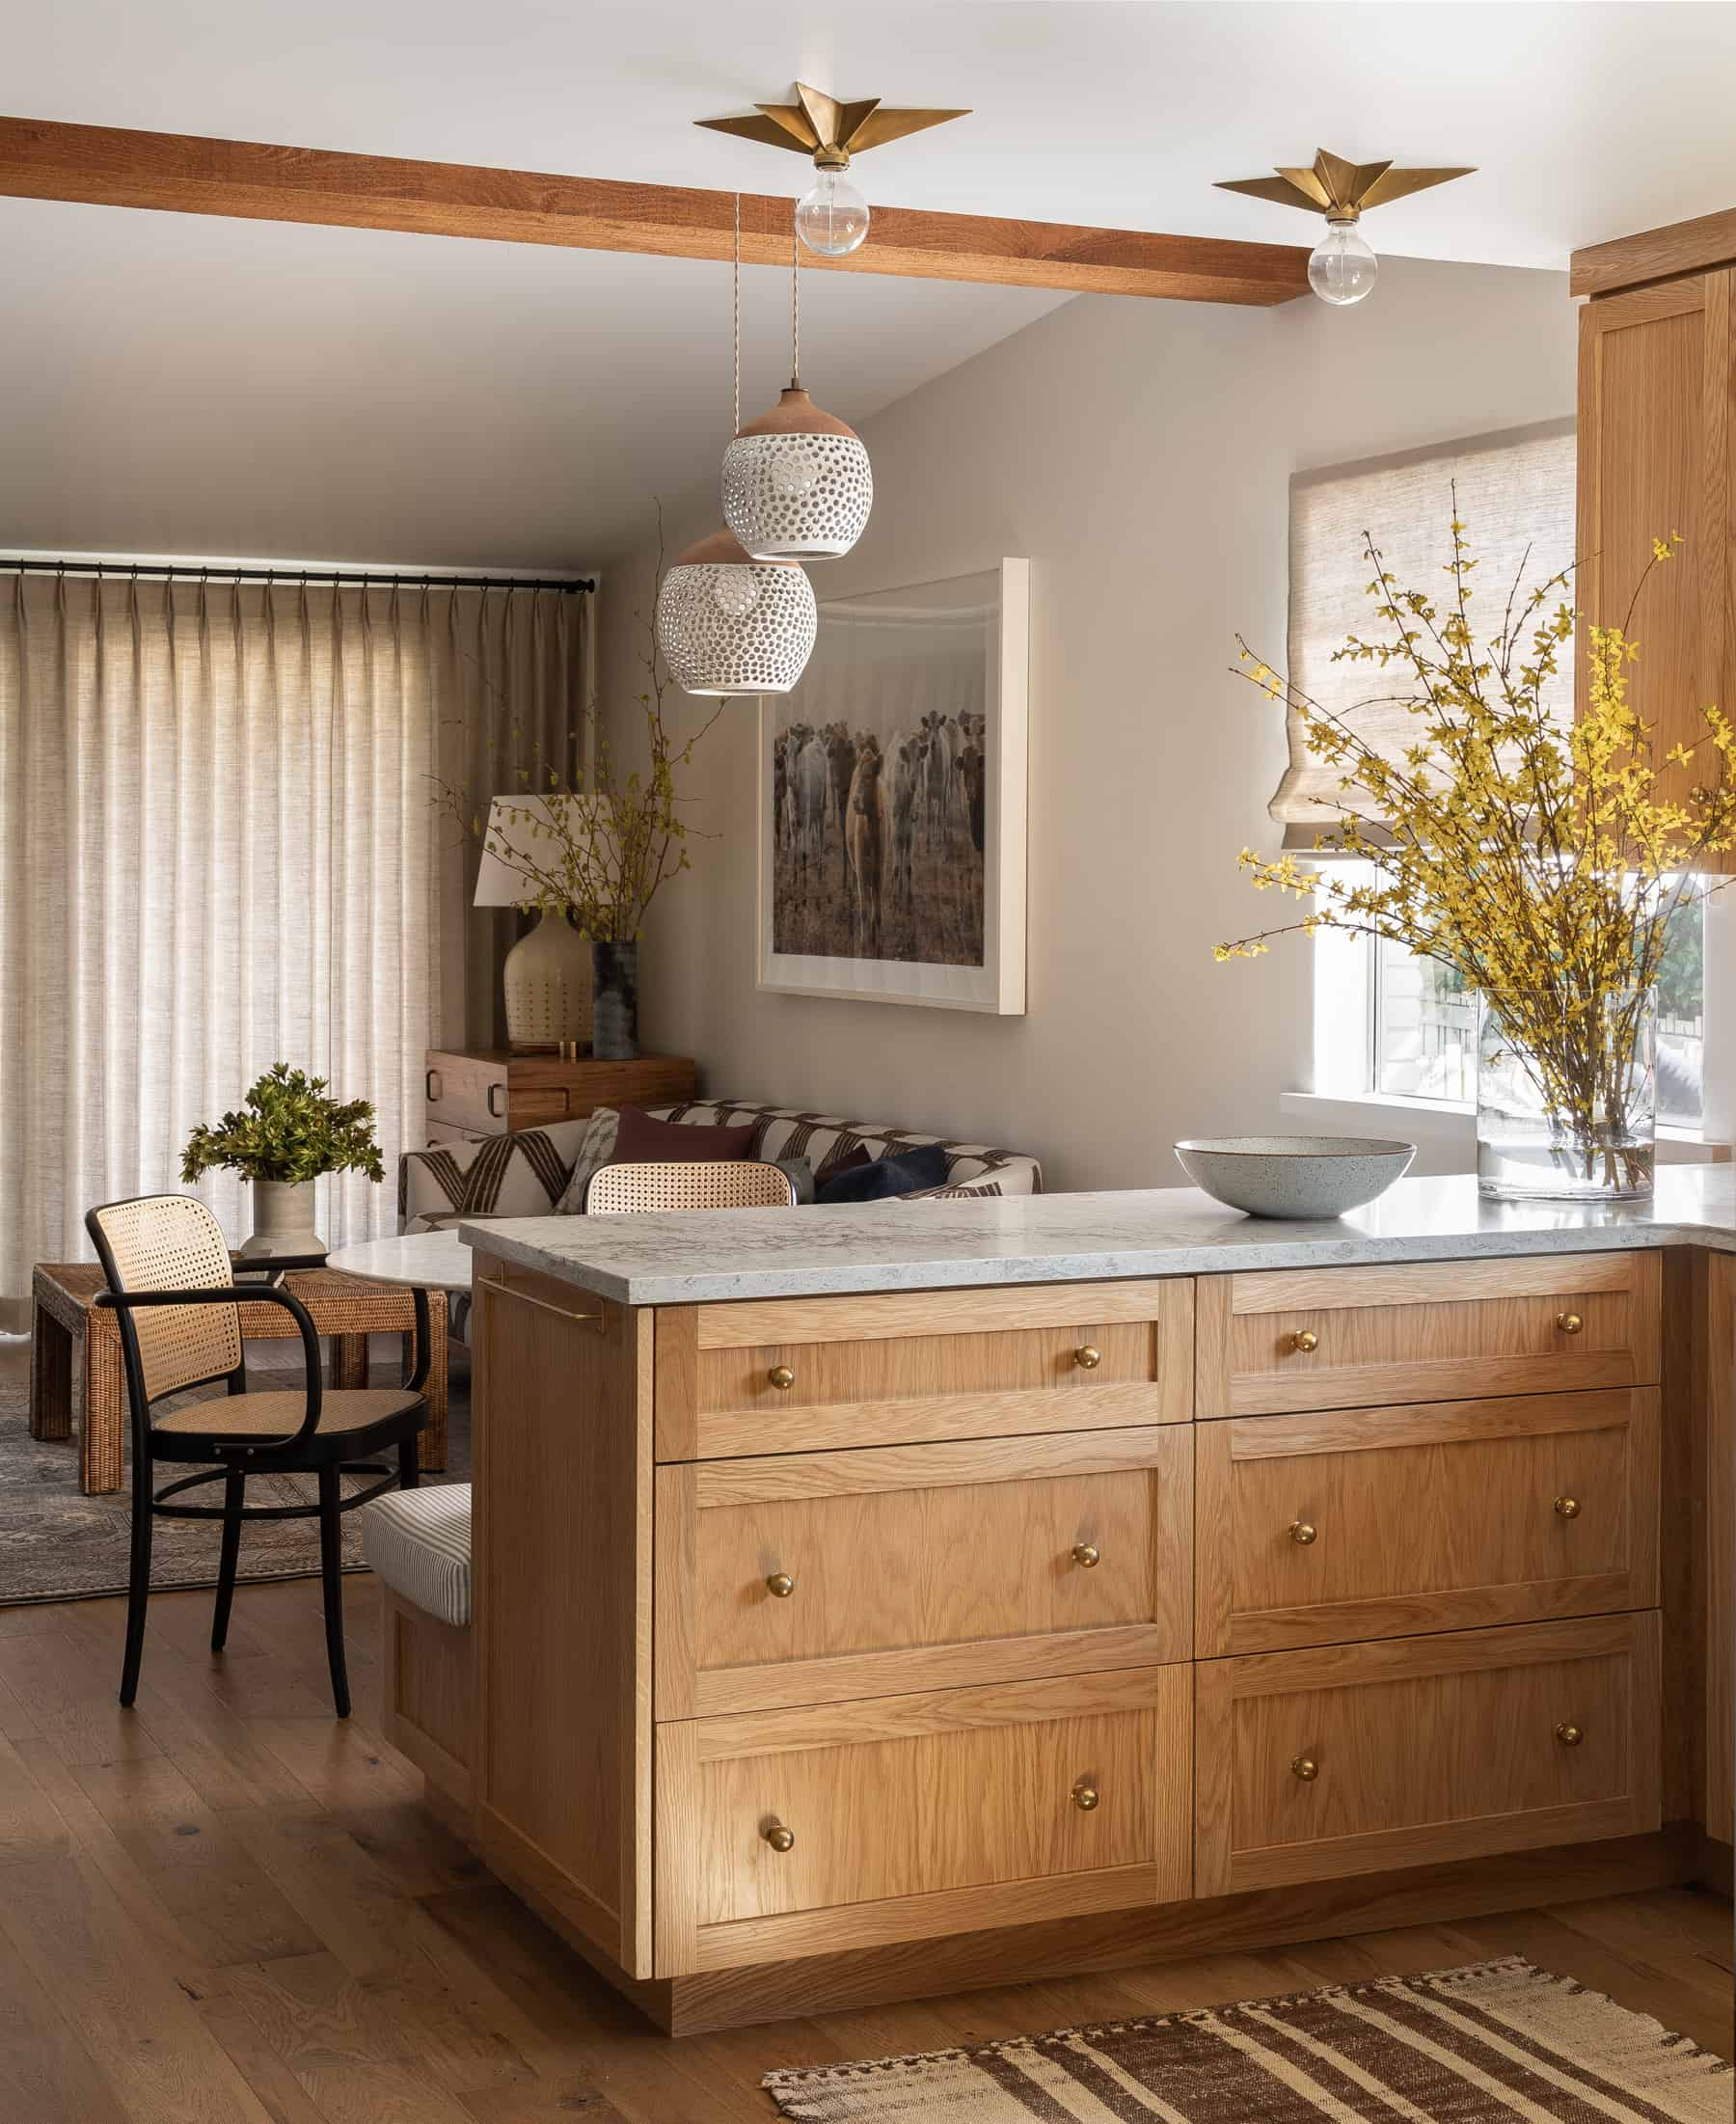 7 Ways to Ensure Your Solid Wood Kitchen Cabinets Stand ...